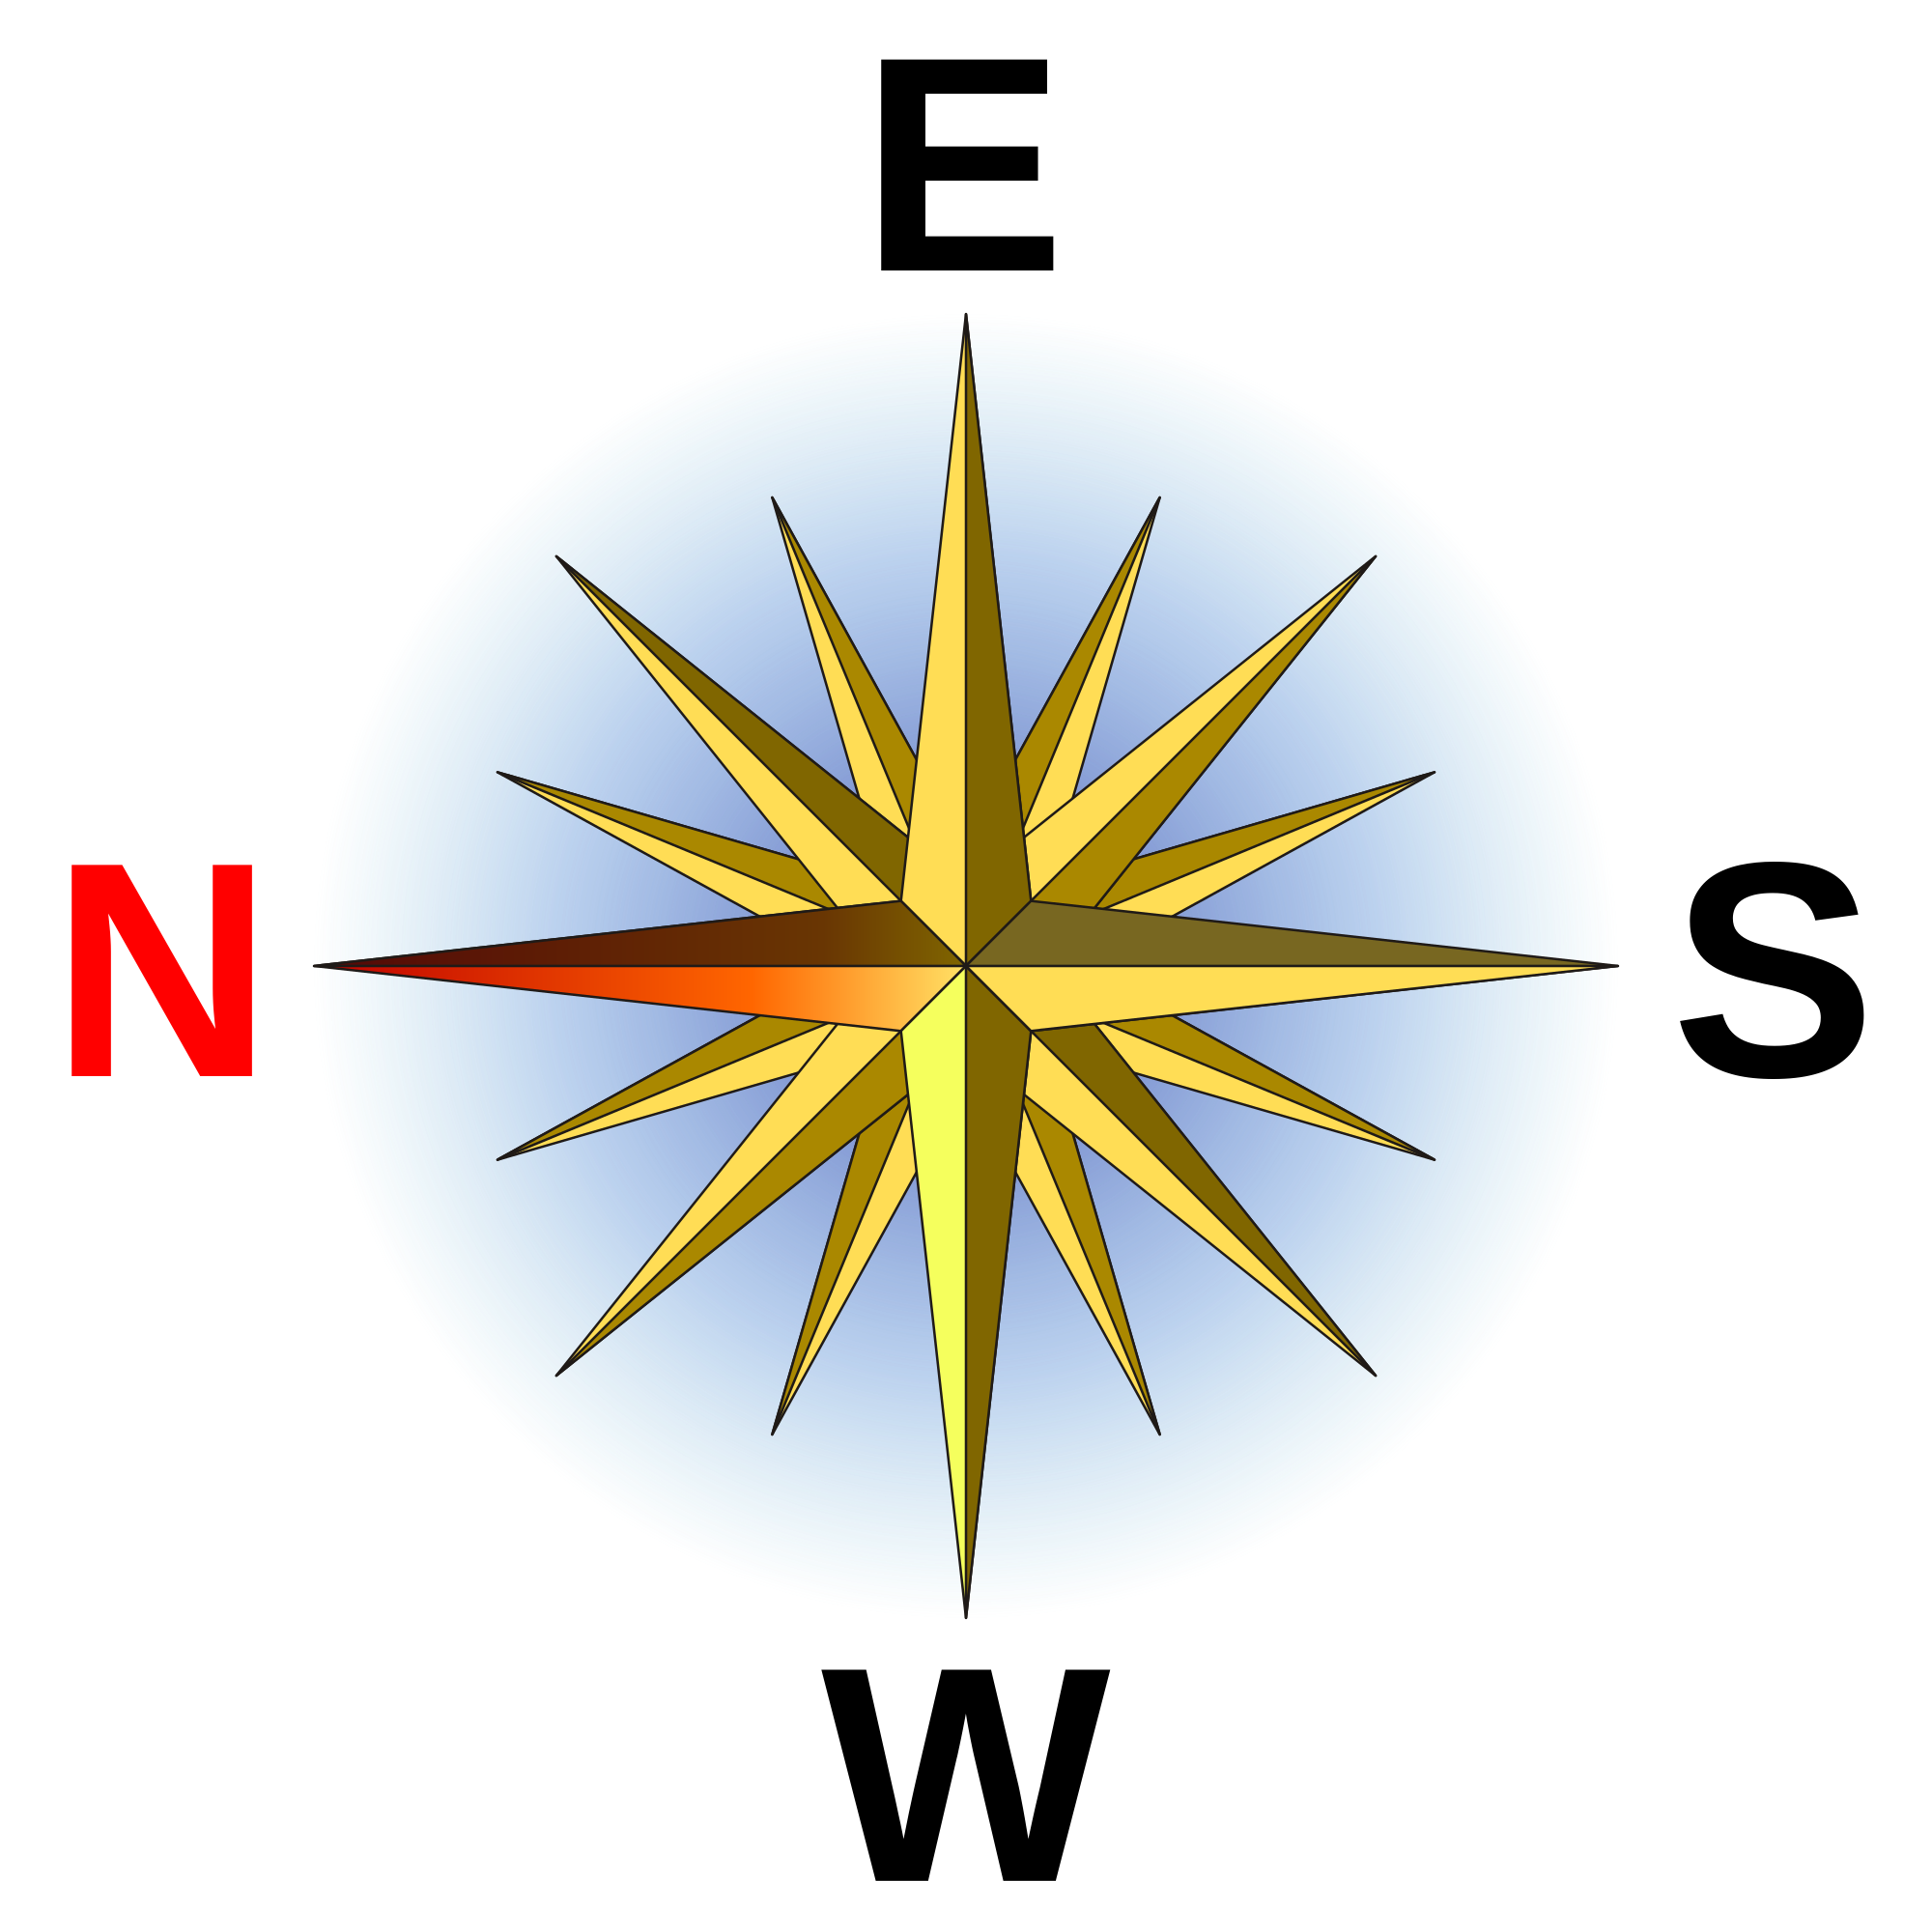 Collection of compass rose. E clipart small